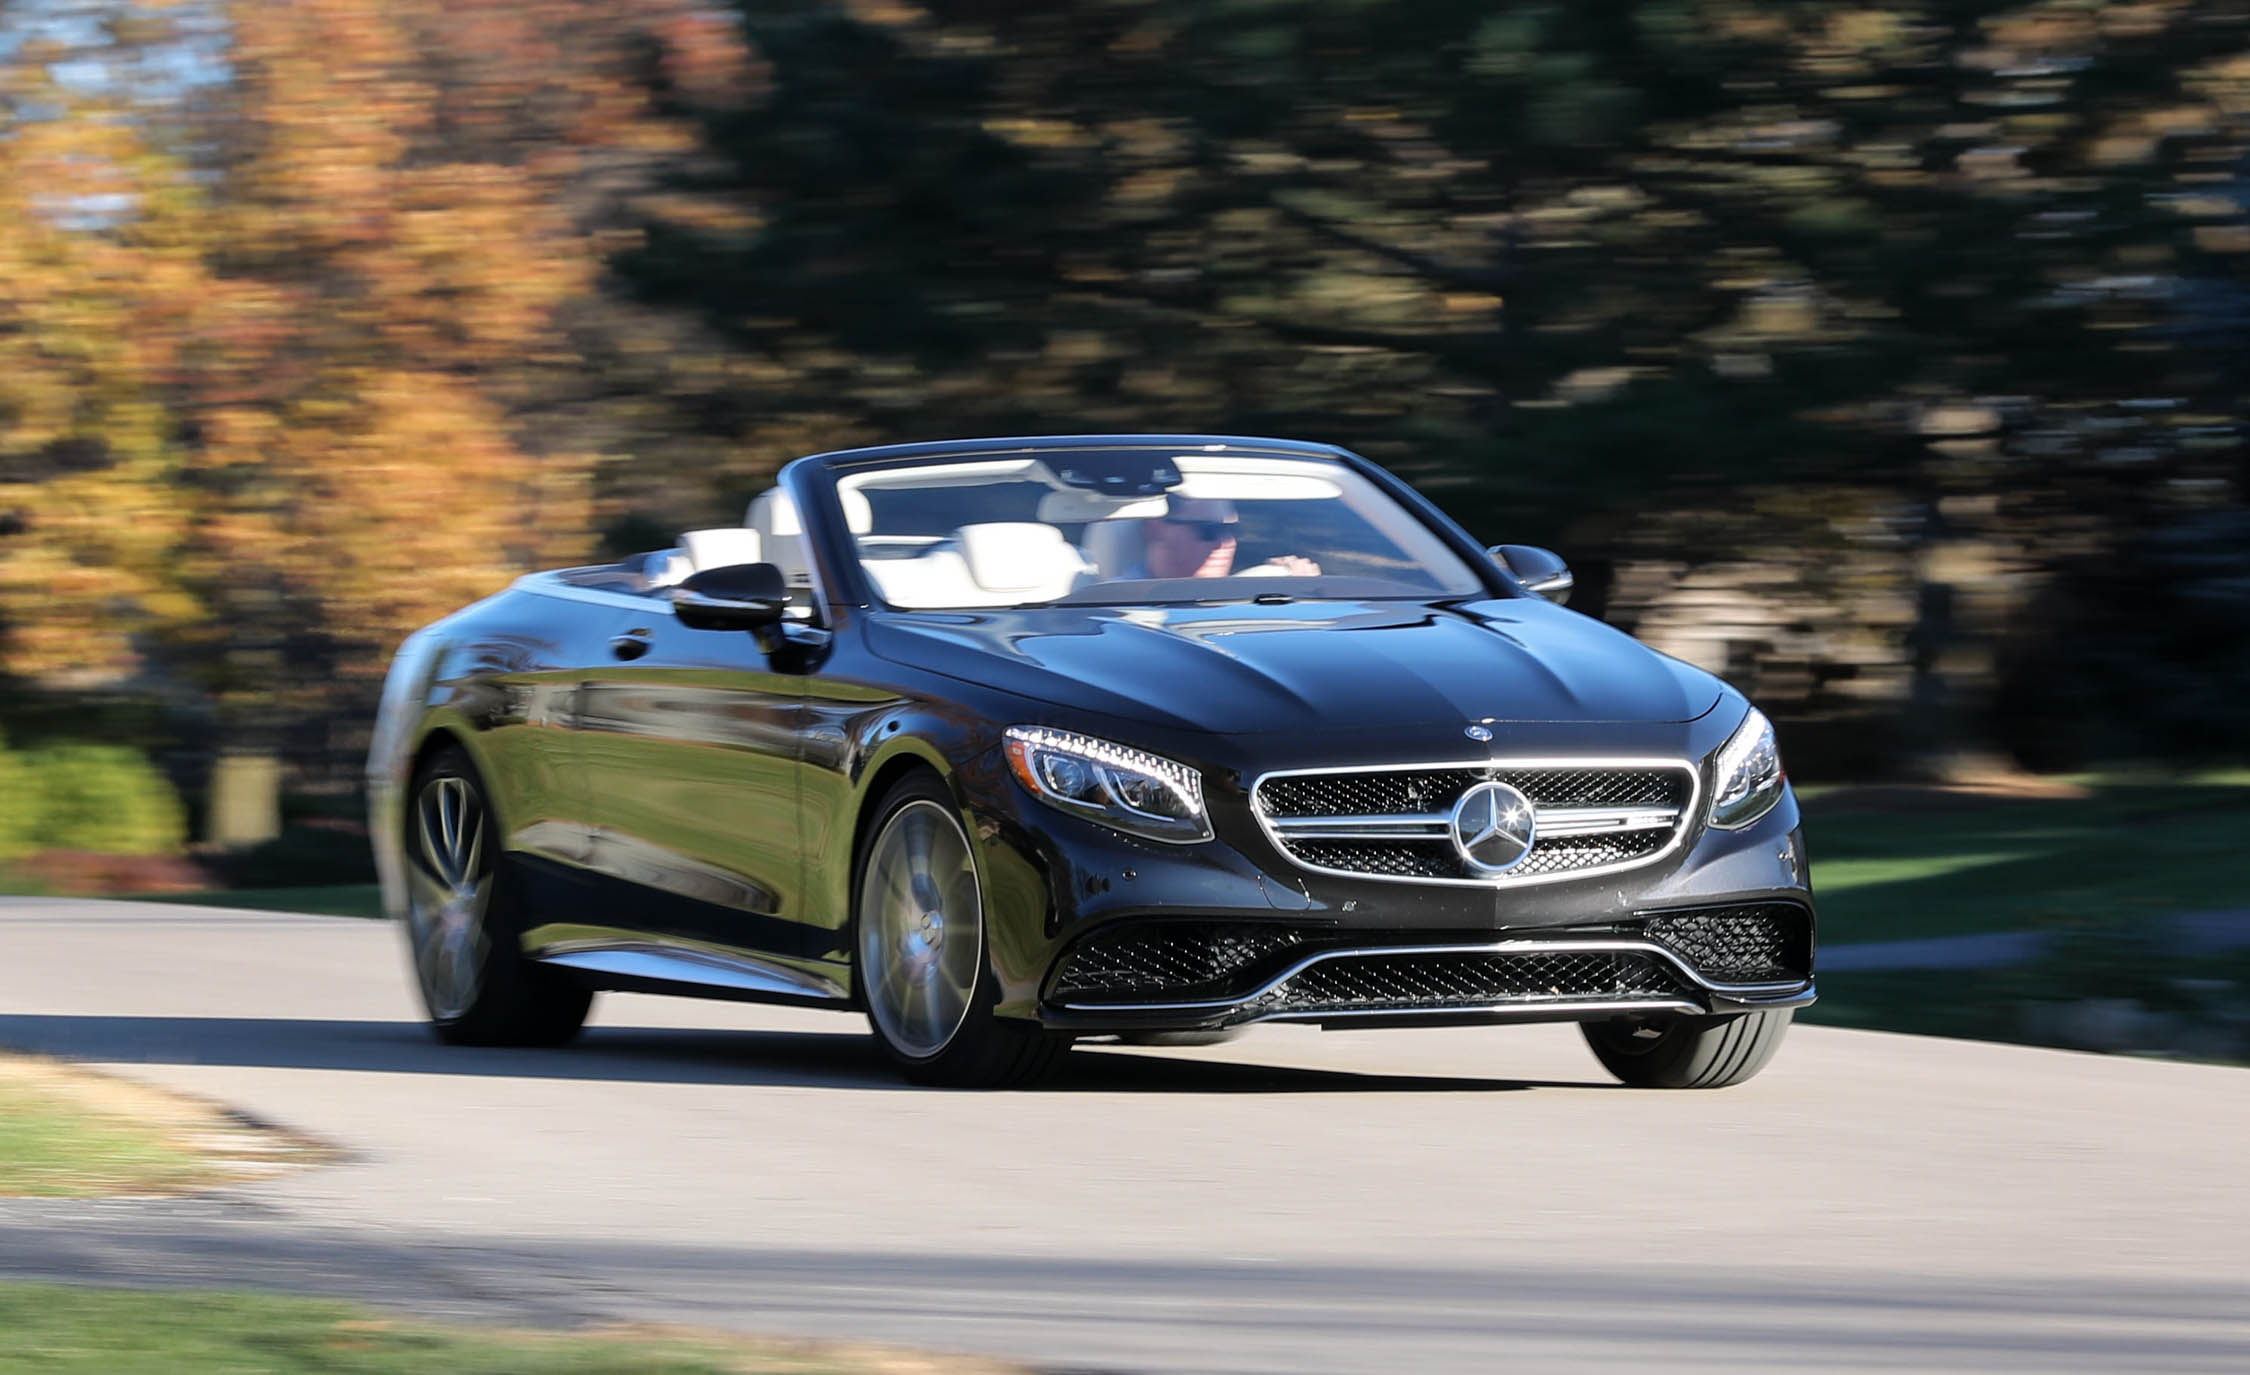 2017 Mercedes Amg S63 Cabriolet Test Drive Front View Roof Open (Photo 30 of 38)